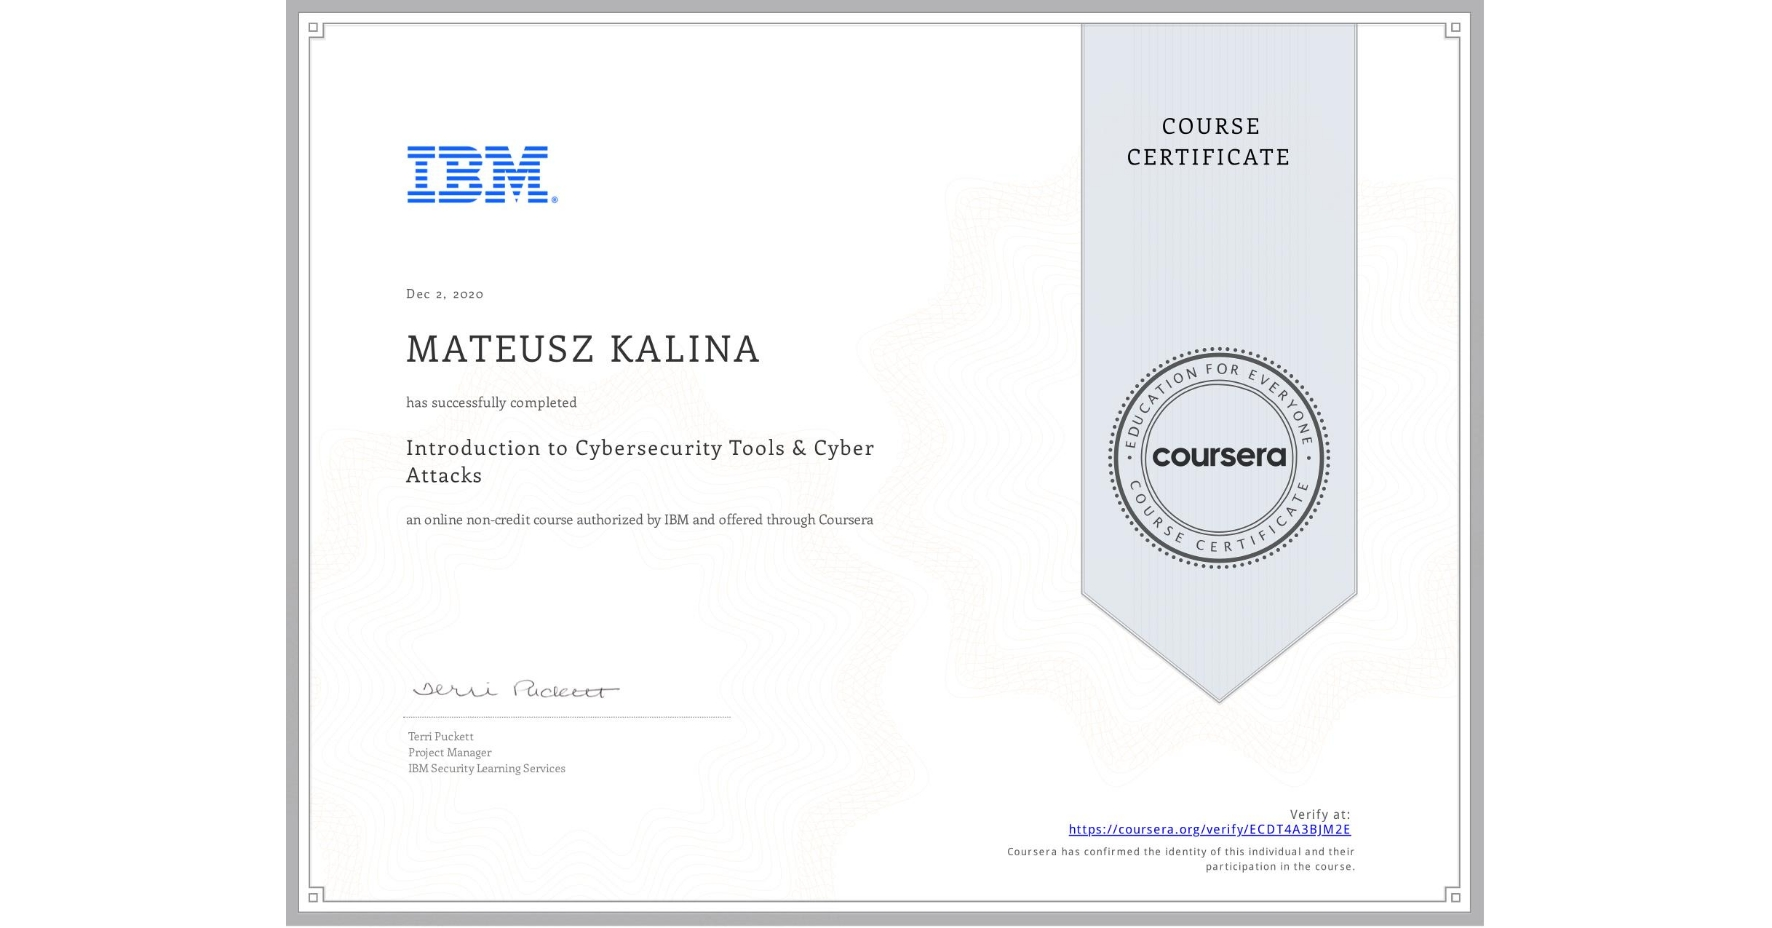 View certificate for MATEUSZ KALINA, Introduction to Cybersecurity Tools & Cyber Attacks, an online non-credit course authorized by IBM and offered through Coursera